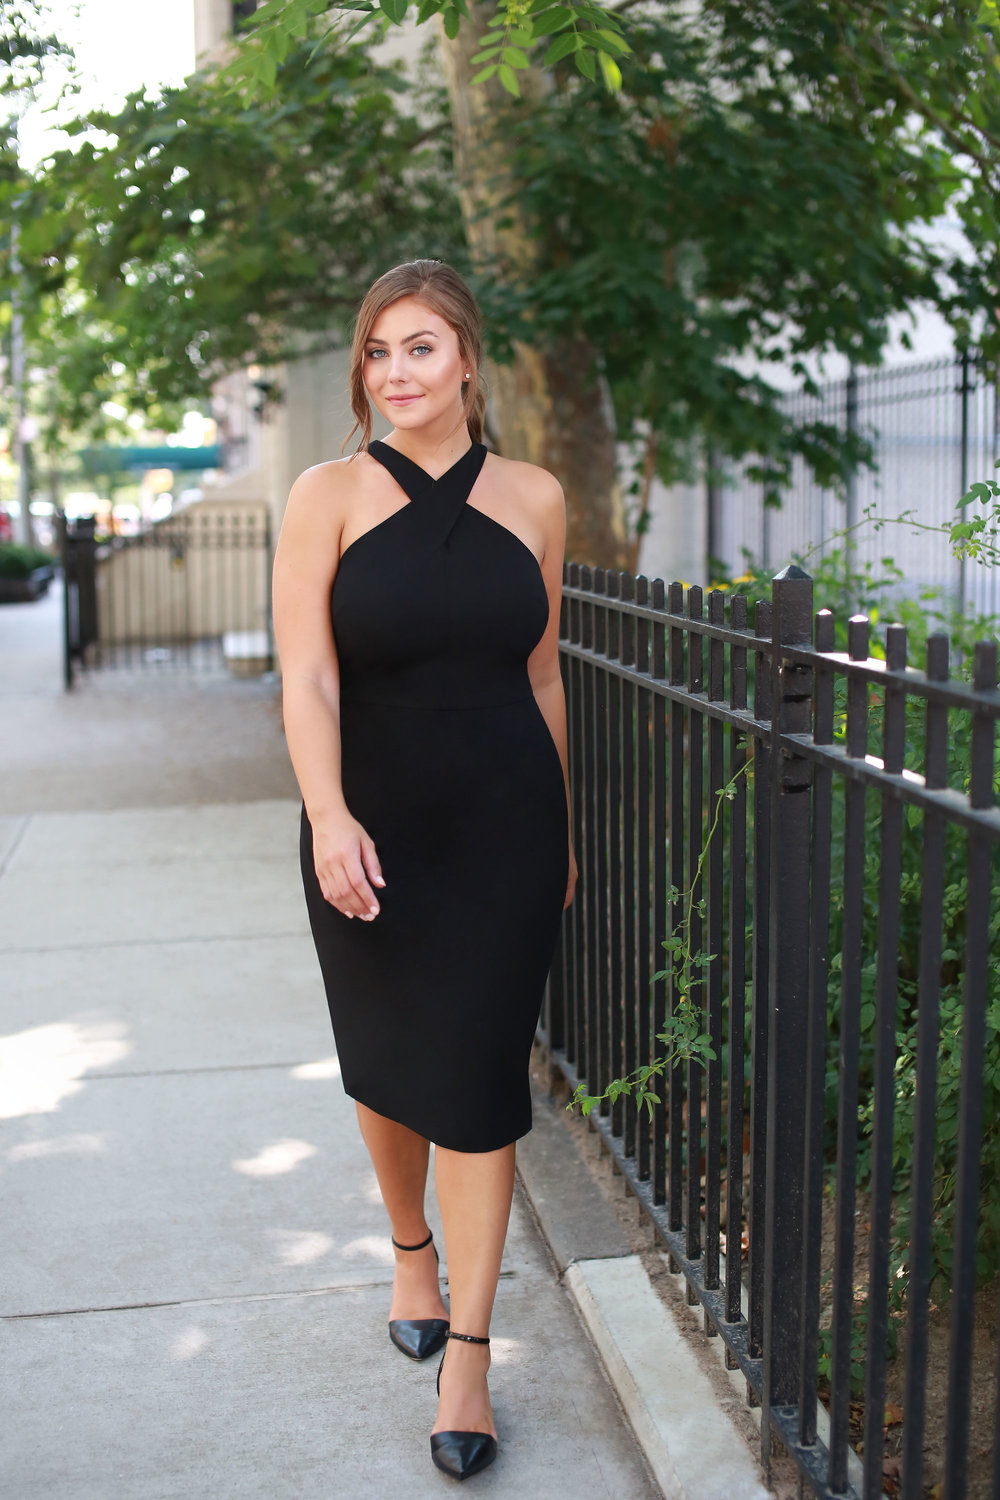 7. Engagement Party - Effortlessly sexy, this classic LBD is completed with the most perfect halter neckline. You'll feel confident and comfortable the whole night celebrating the bride-and-groom-to-be.